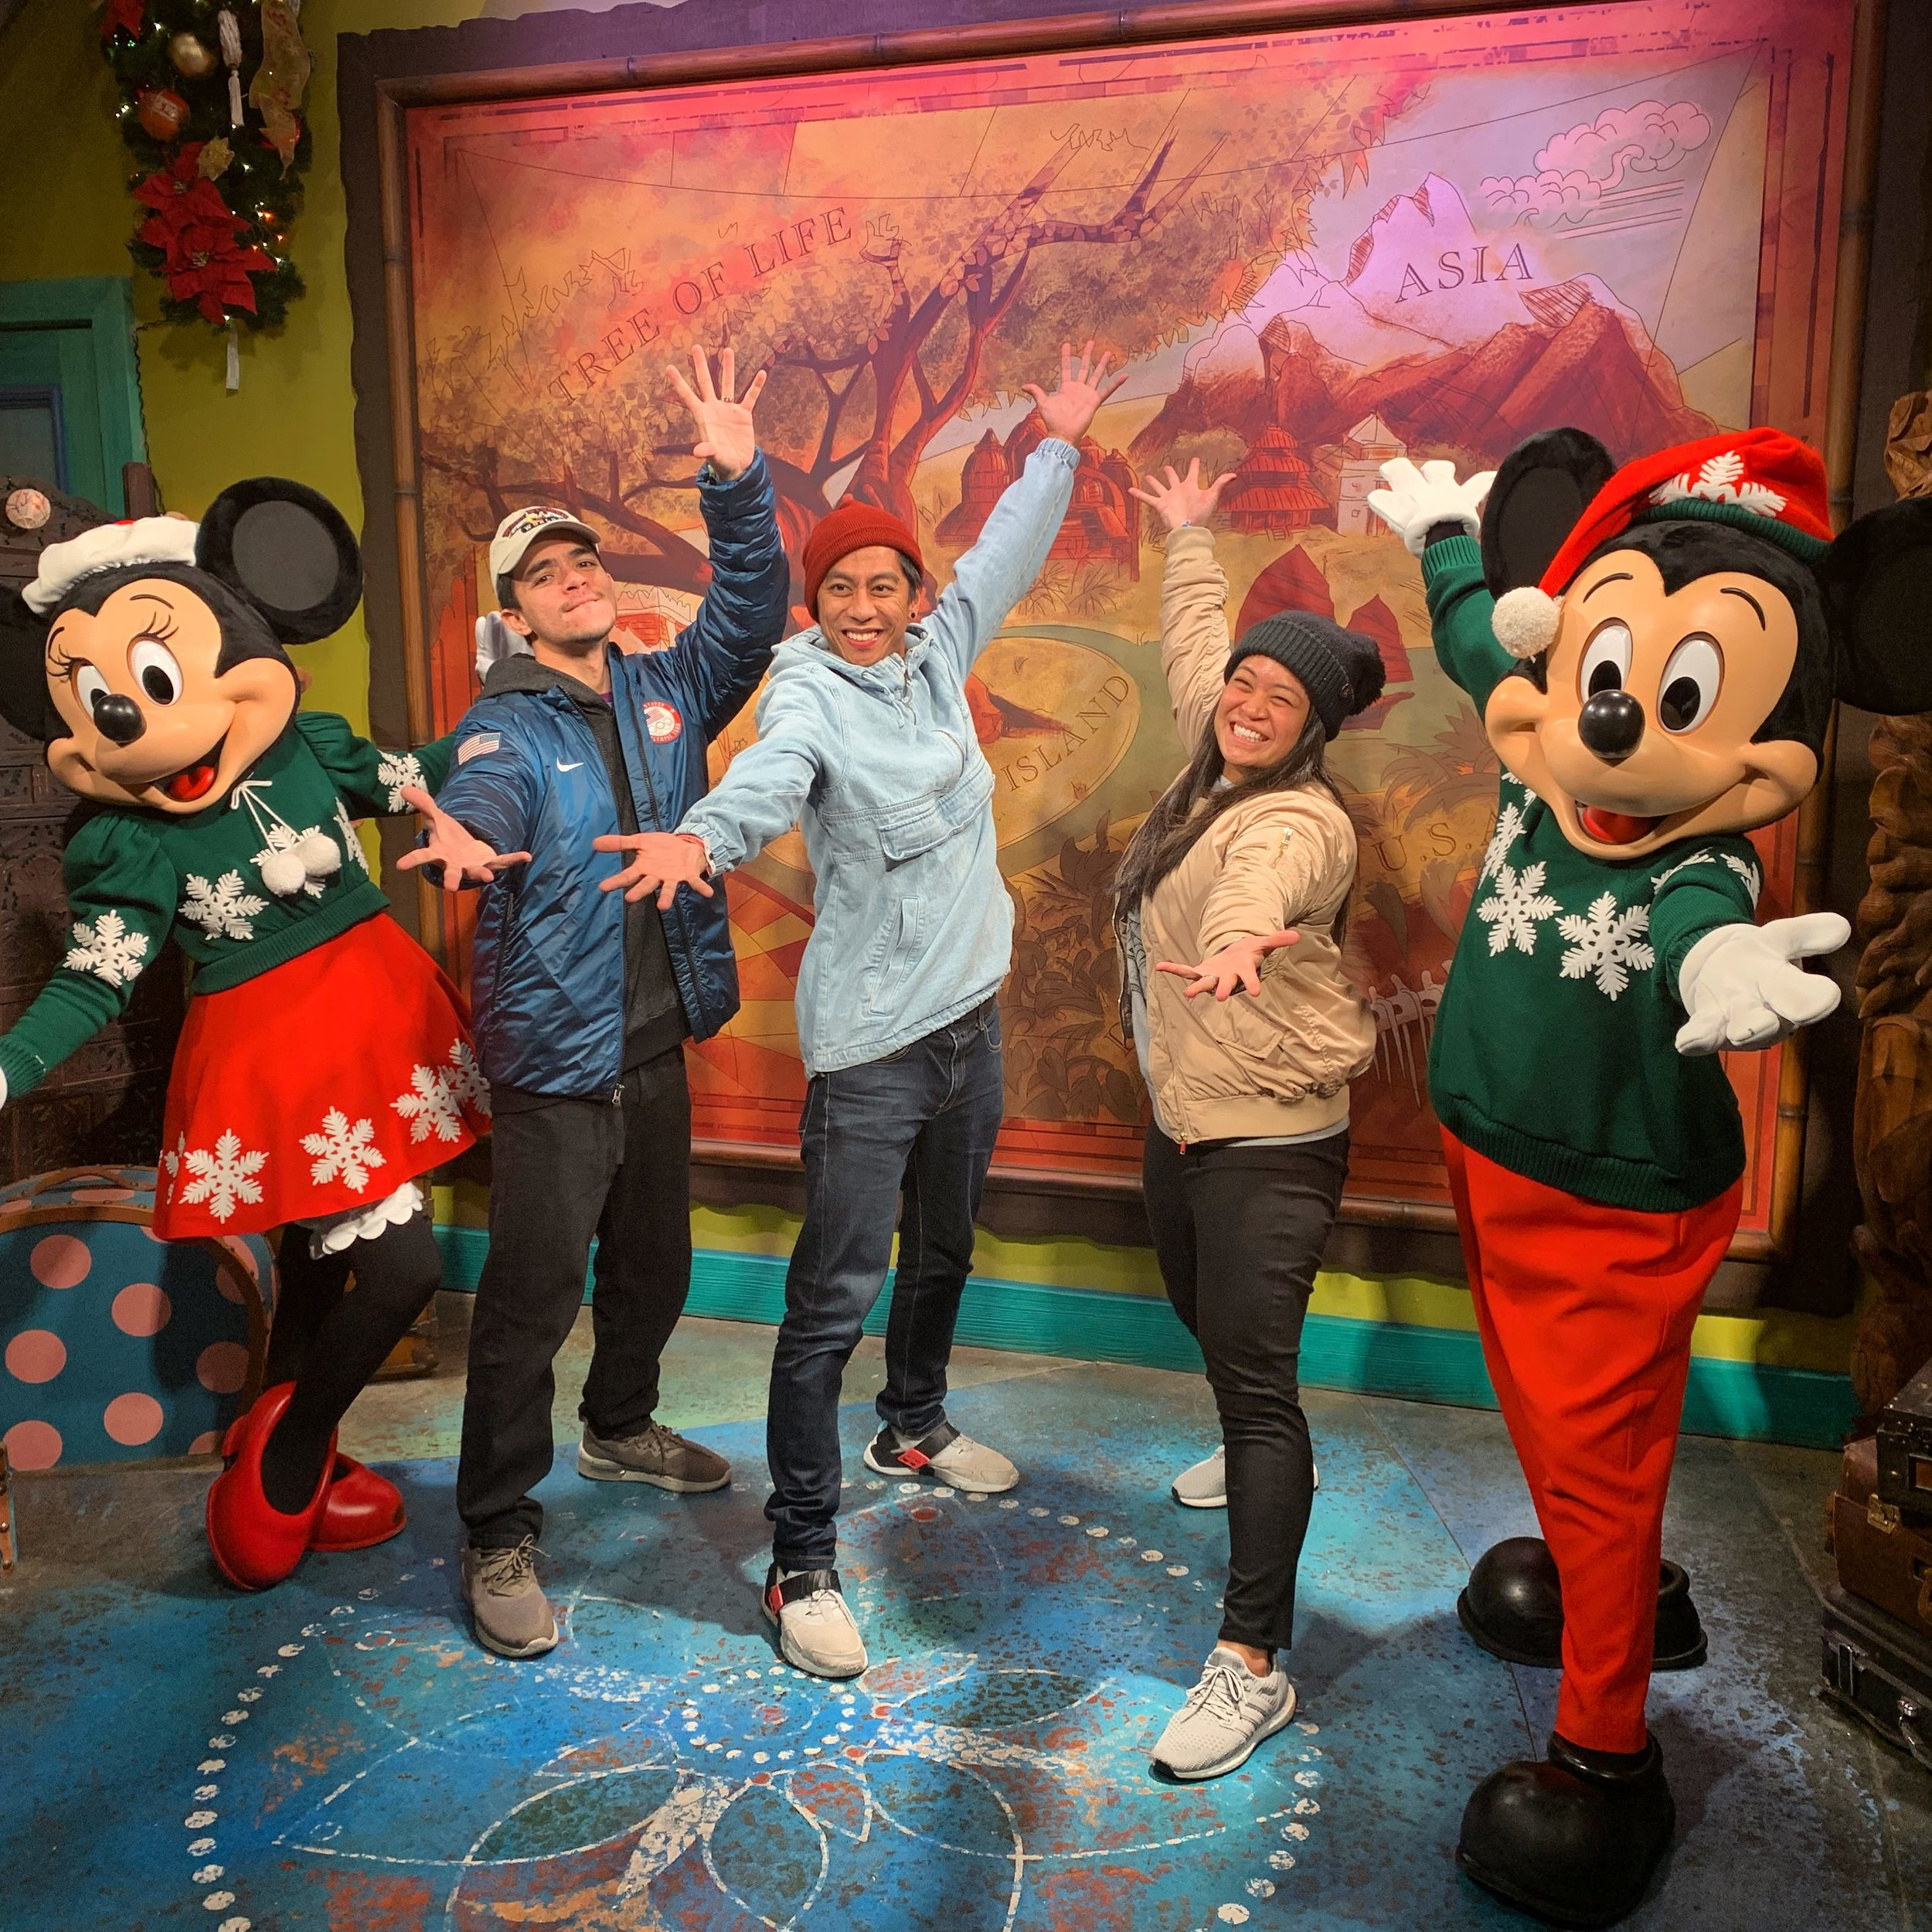 Poses with Mickey and Minnie